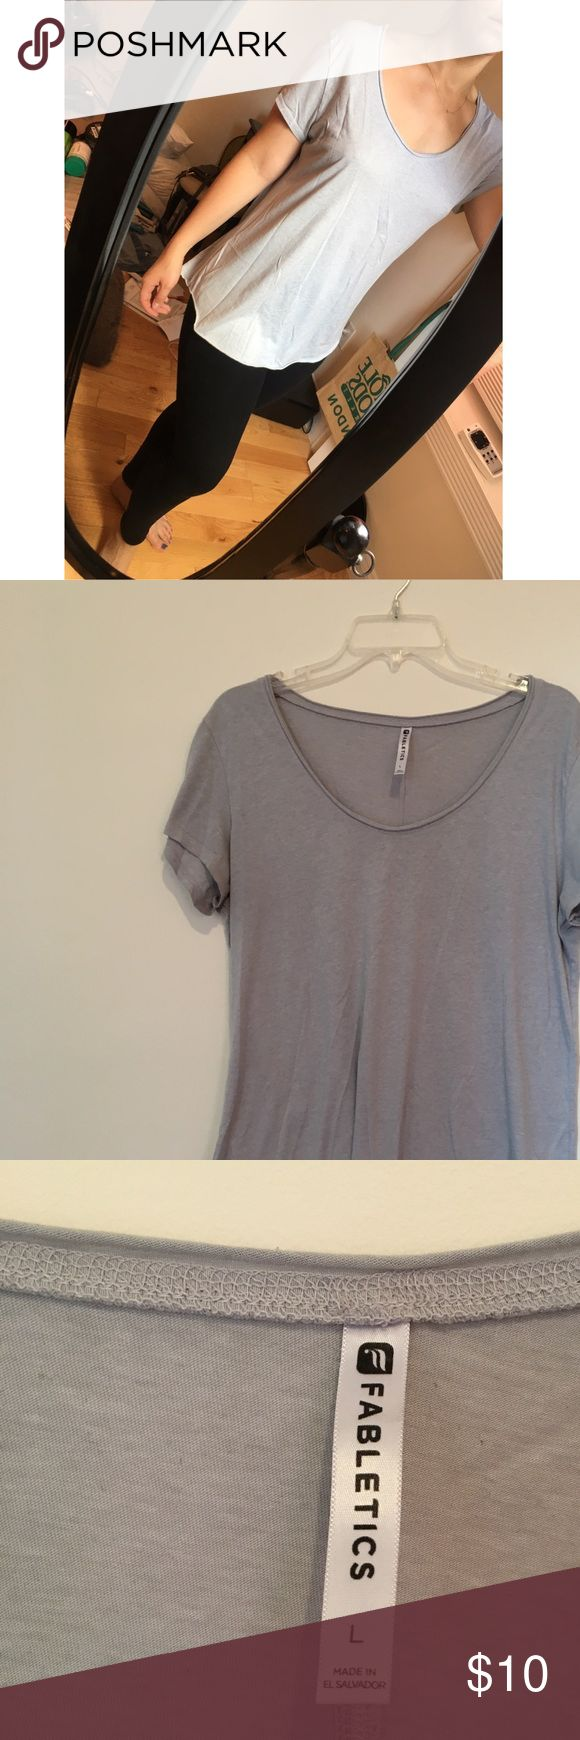 Fabletics comfy top! No top more comfy than this! Sonlight and a great neutral color. Scoop neck super flattering! Says large but med and small could wear as a comfy top. (I'm a med) Fabletics Tops Tees - Short Sleeve